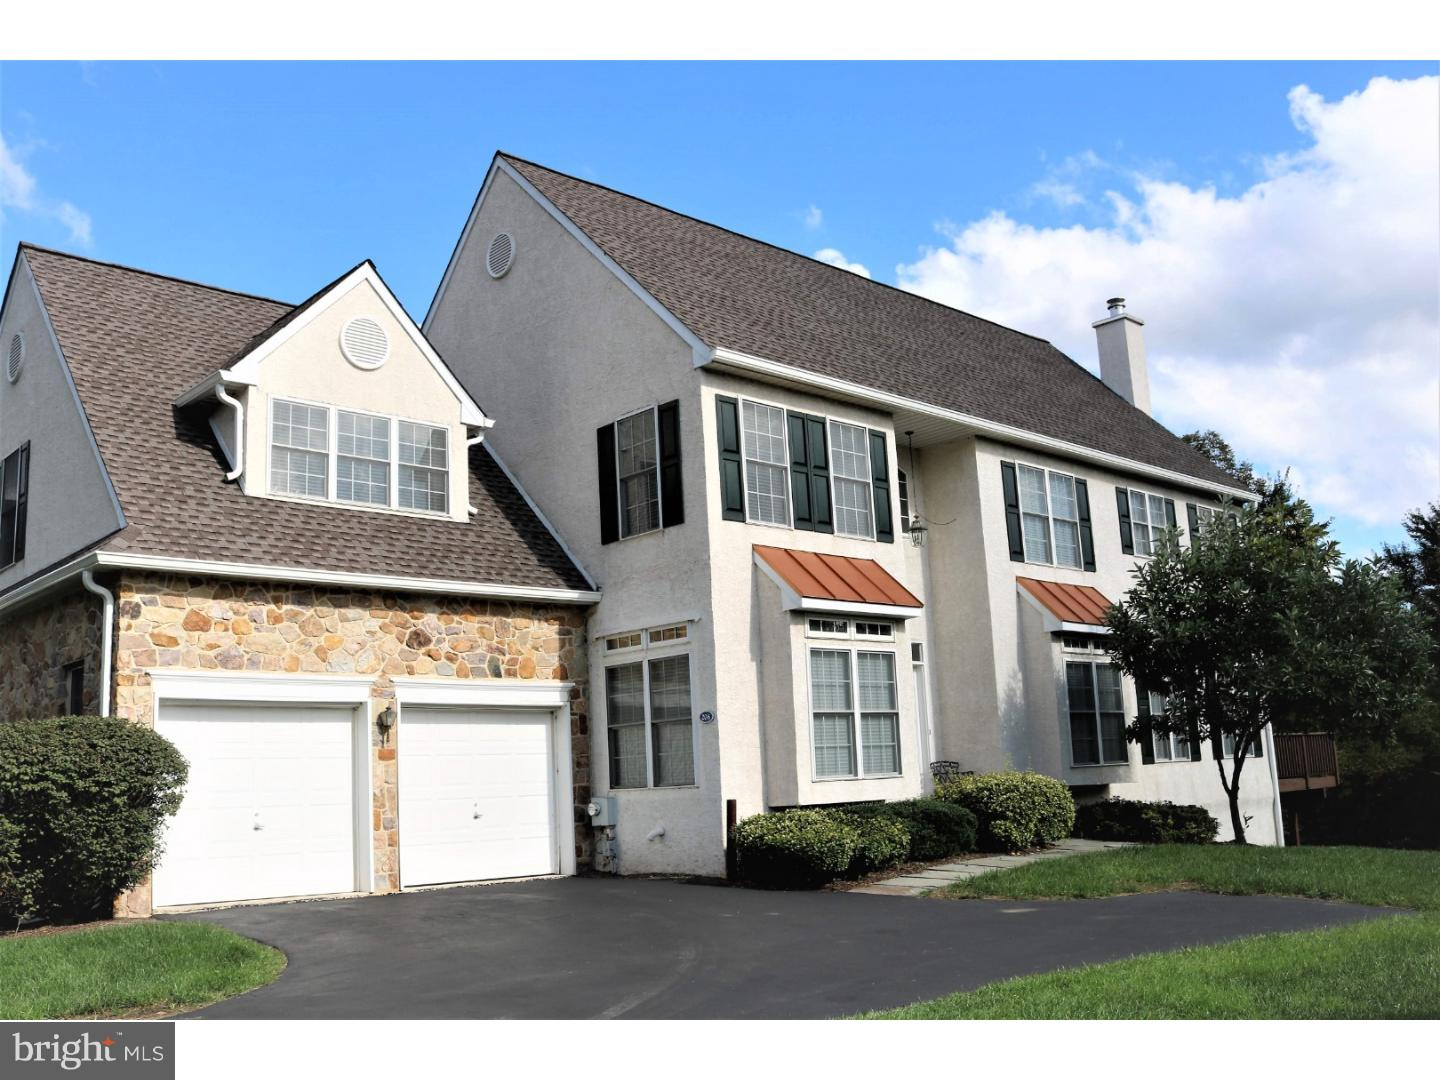 206 Whispering Brooke Drive Newtown Square, PA 19073